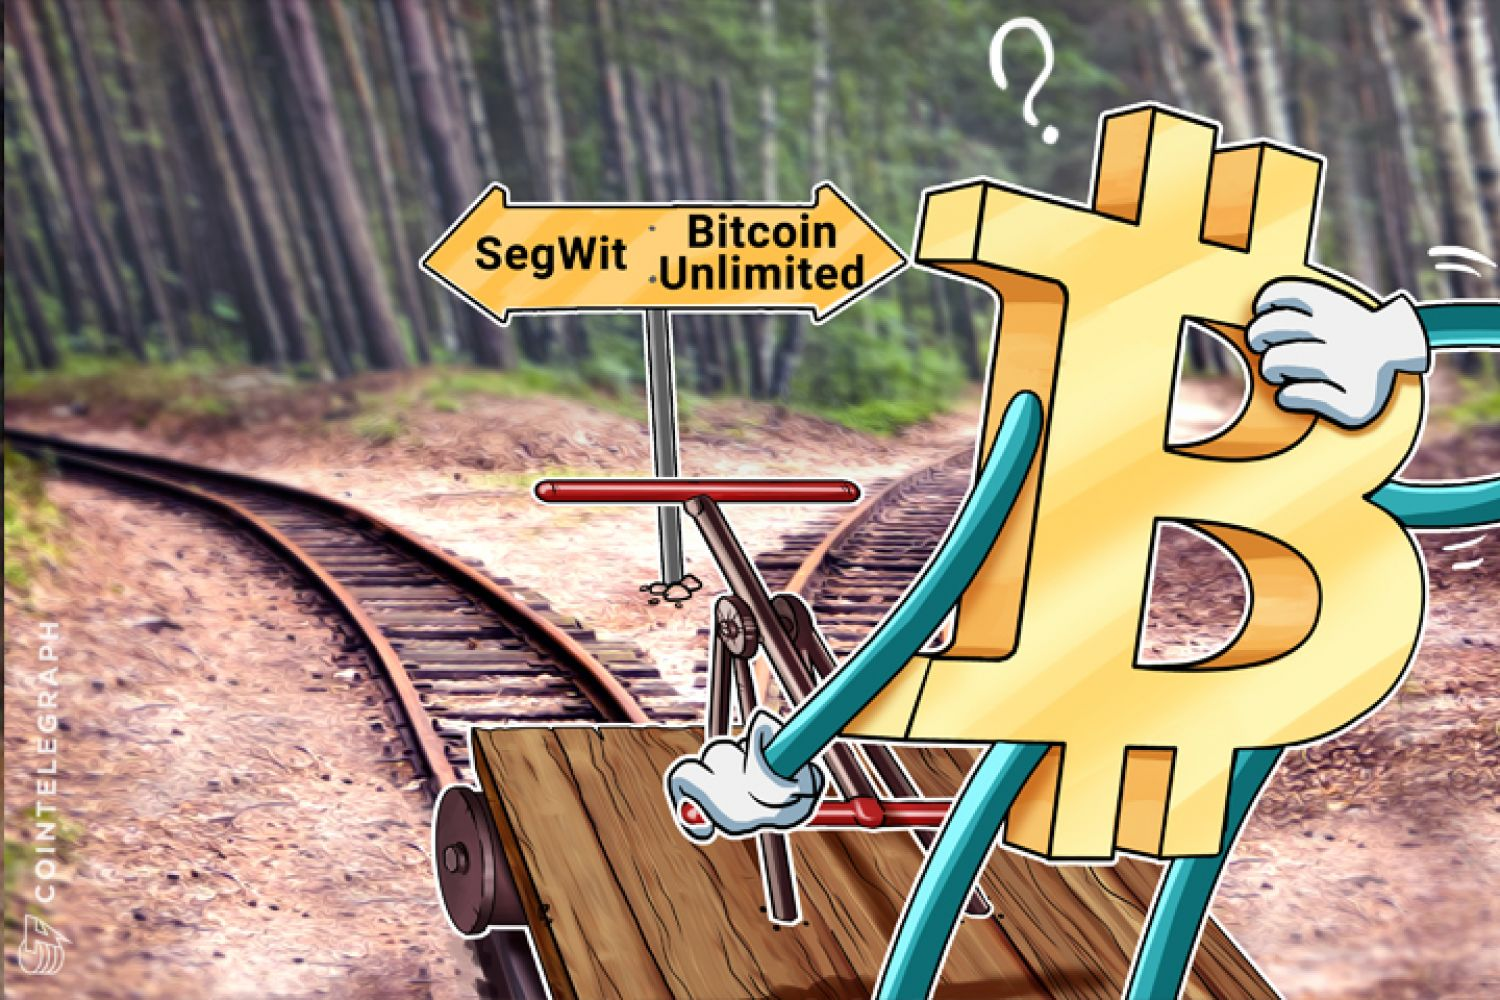 Bitcoin is choosing between SegWit and Bitcoin Unlimited on the railroad